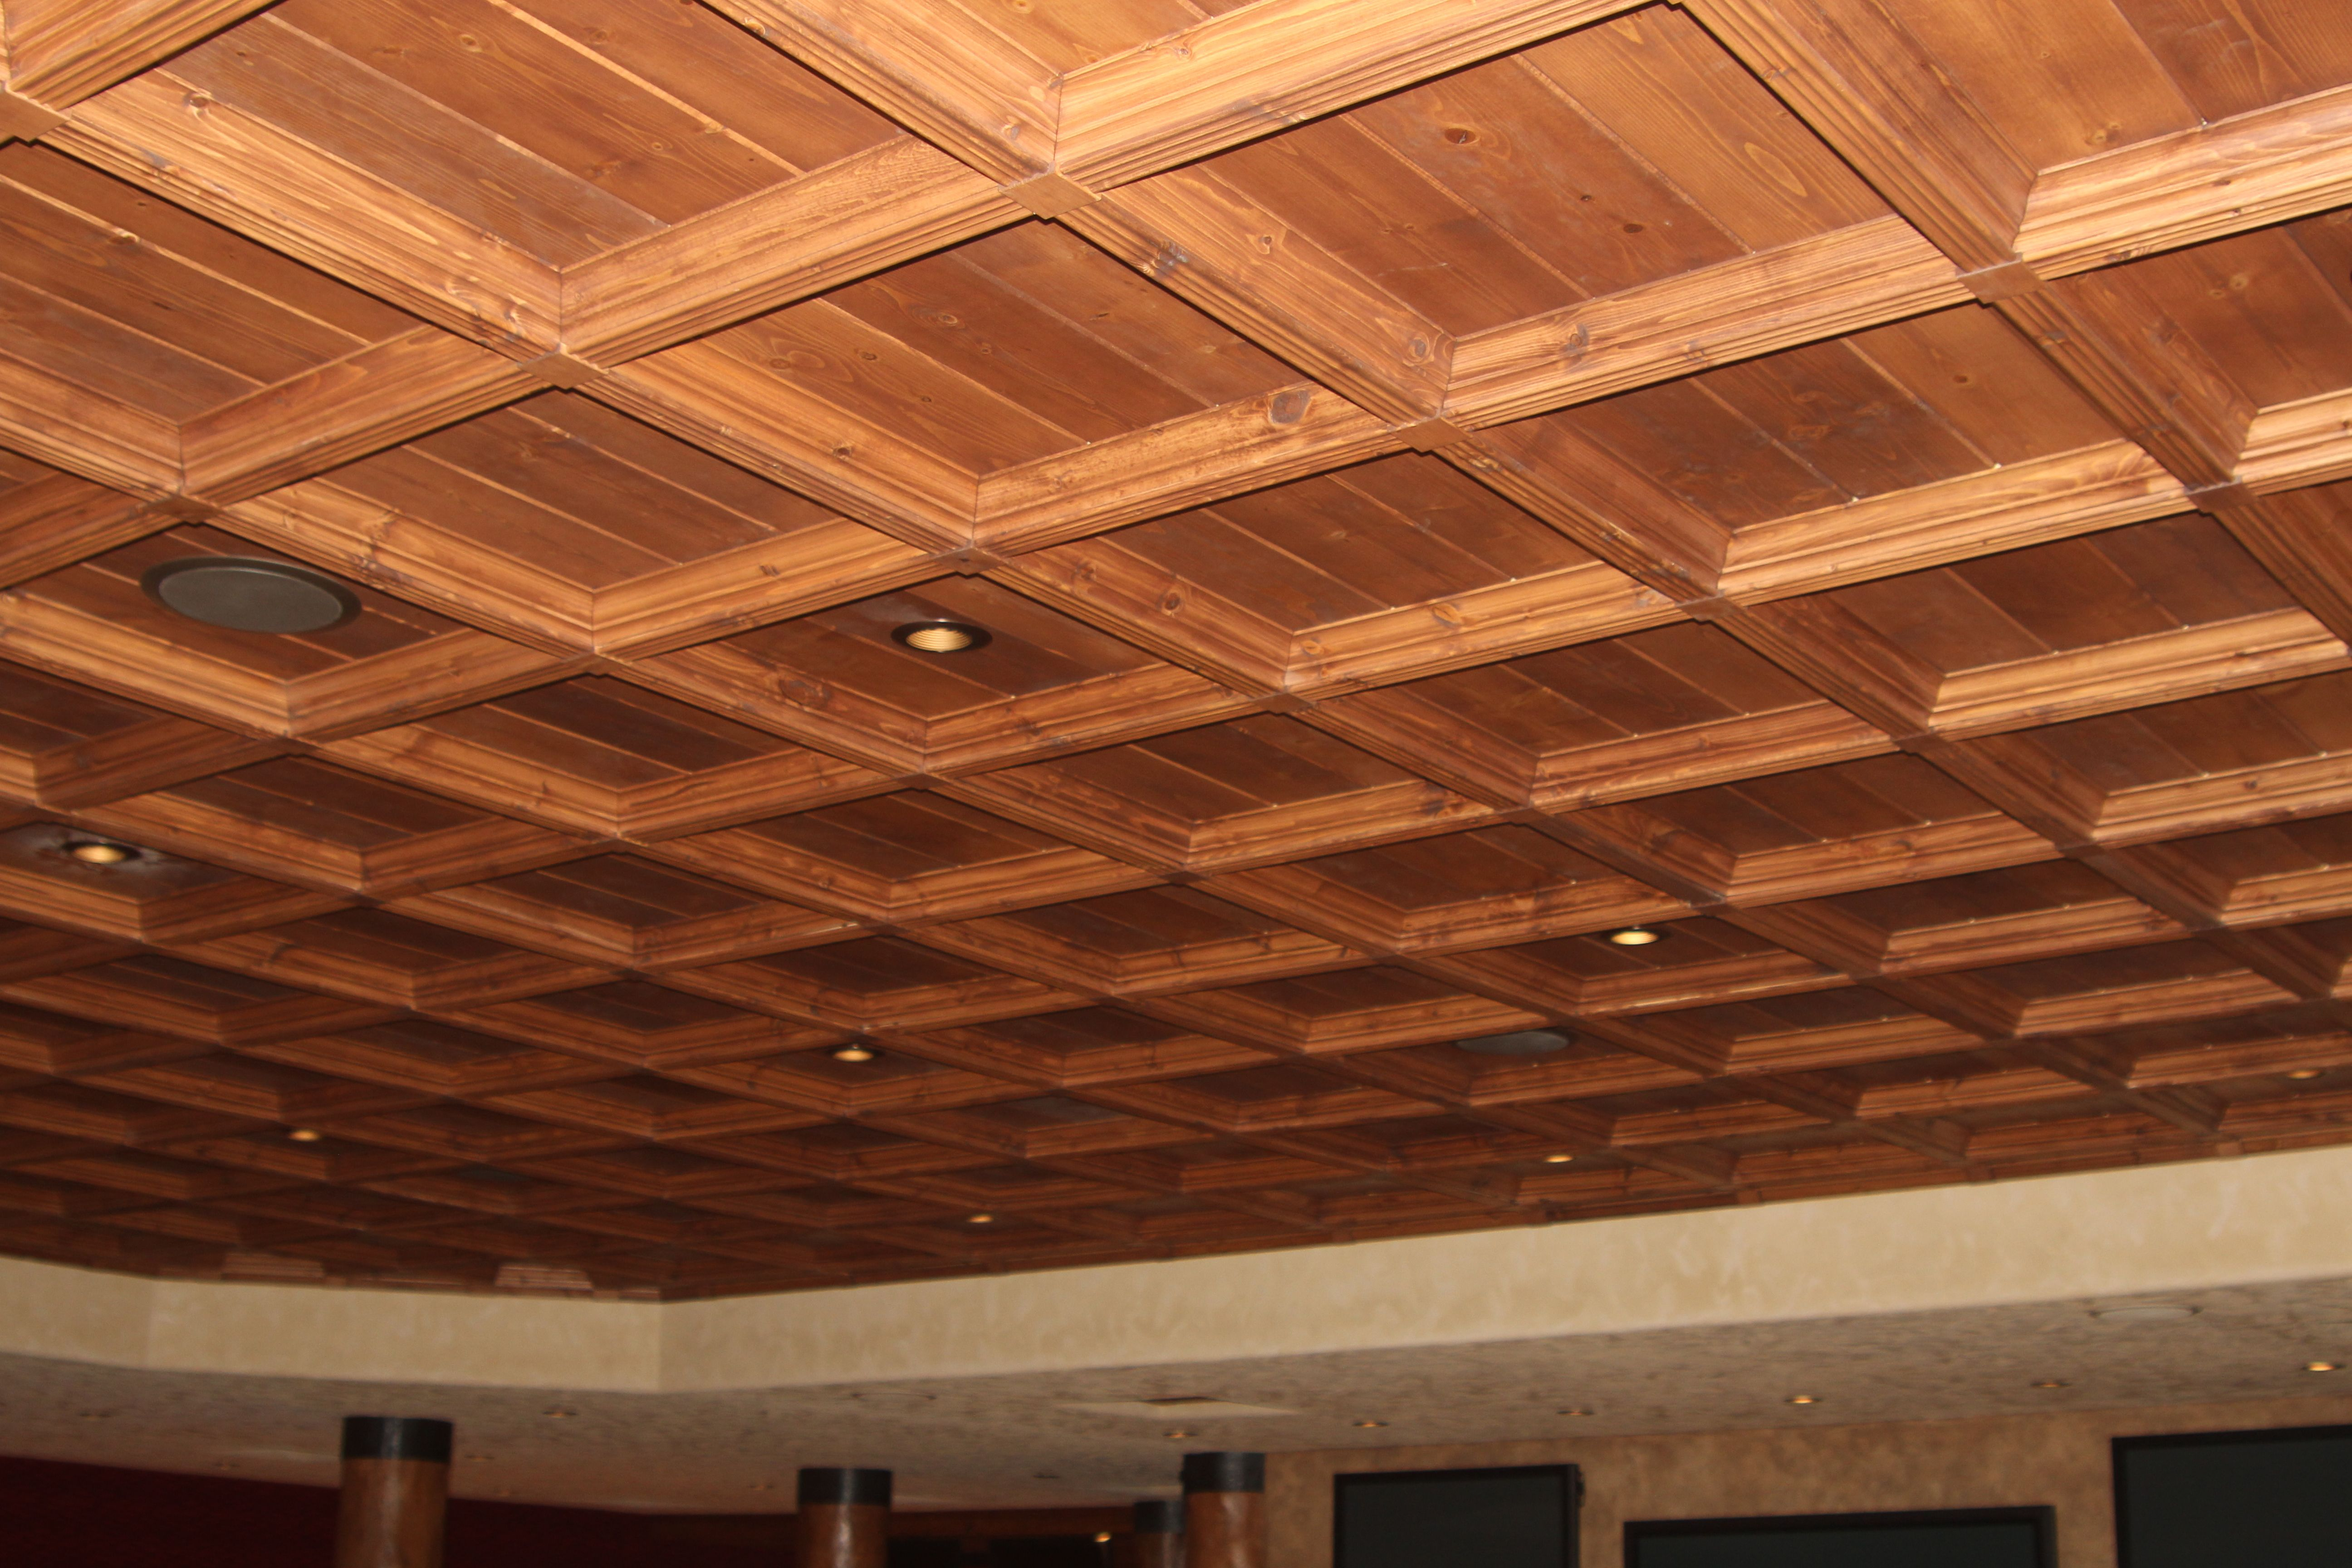 Classic coffers suspended wood coffered ceiling cost for cool home classic coffers suspended wood ceiling offers a classic look for an affordable price with easy installation dailygadgetfo Image collections